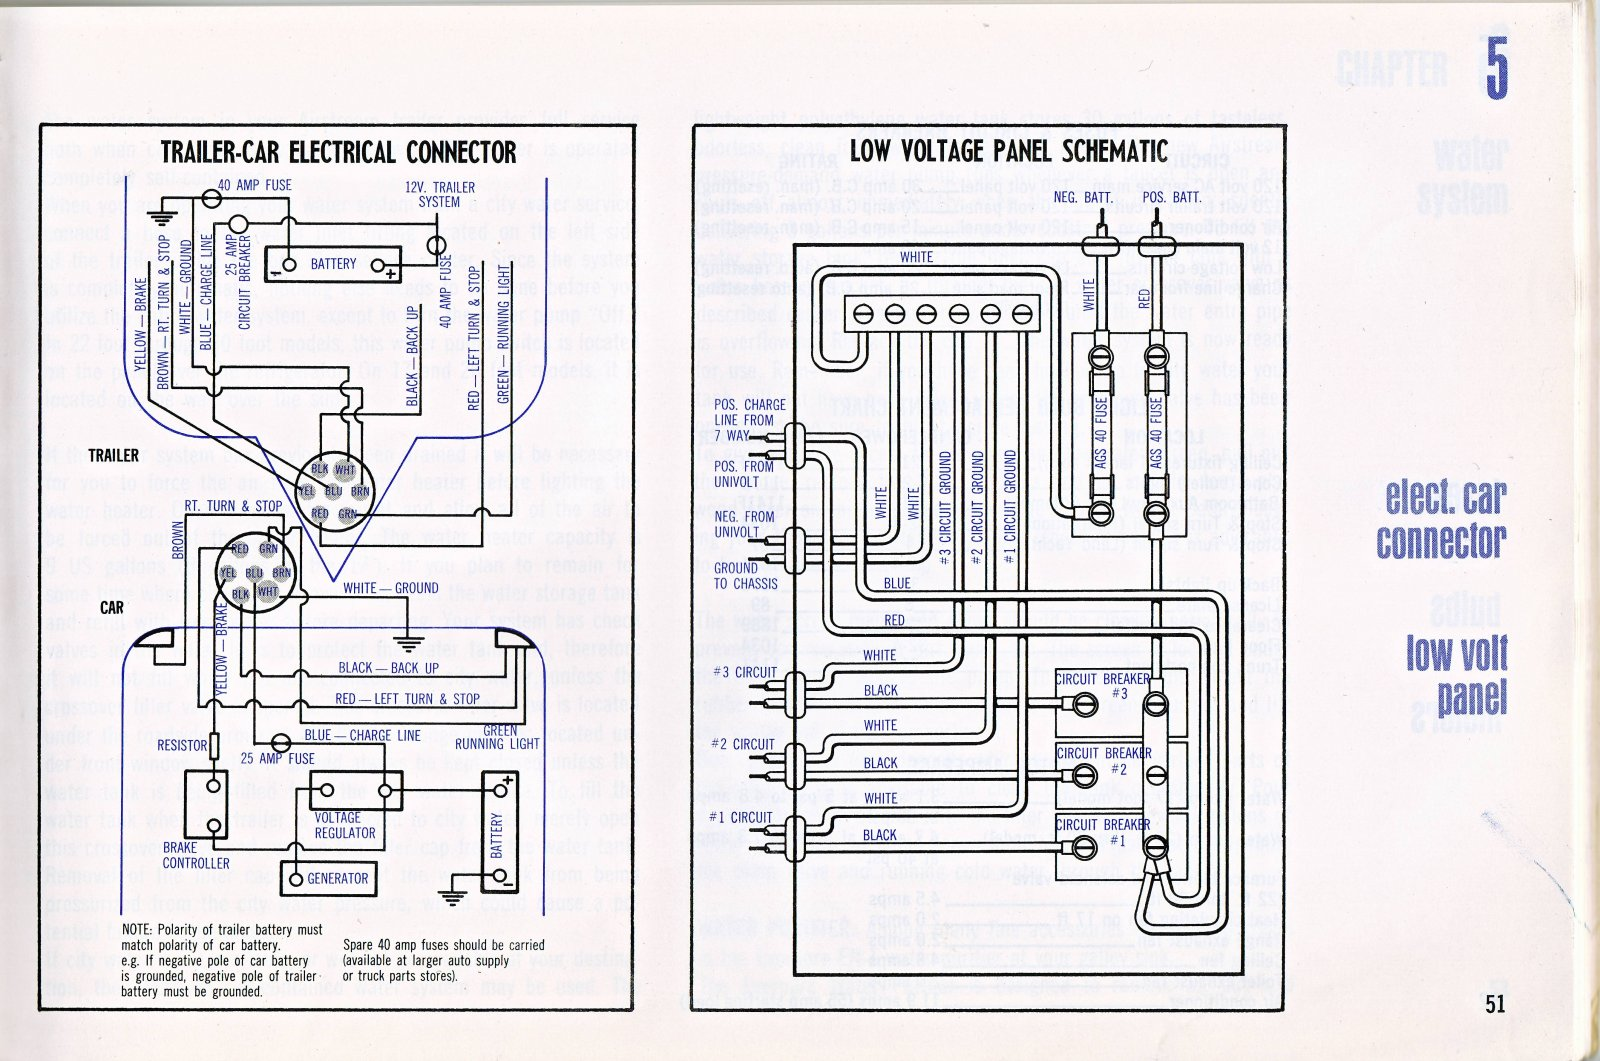 [SCHEMATICS_4UK]  DIAGRAM] Vintage Airstream Globetrotter Wiring Diagram FULL Version HD  Quality Wiring Diagram - VENNDIAGRAMONLINE.NUITDEBOUTAIX.FR | Airstream Wiring Diagrams |  | venndiagramonline.nuitdeboutaix.fr